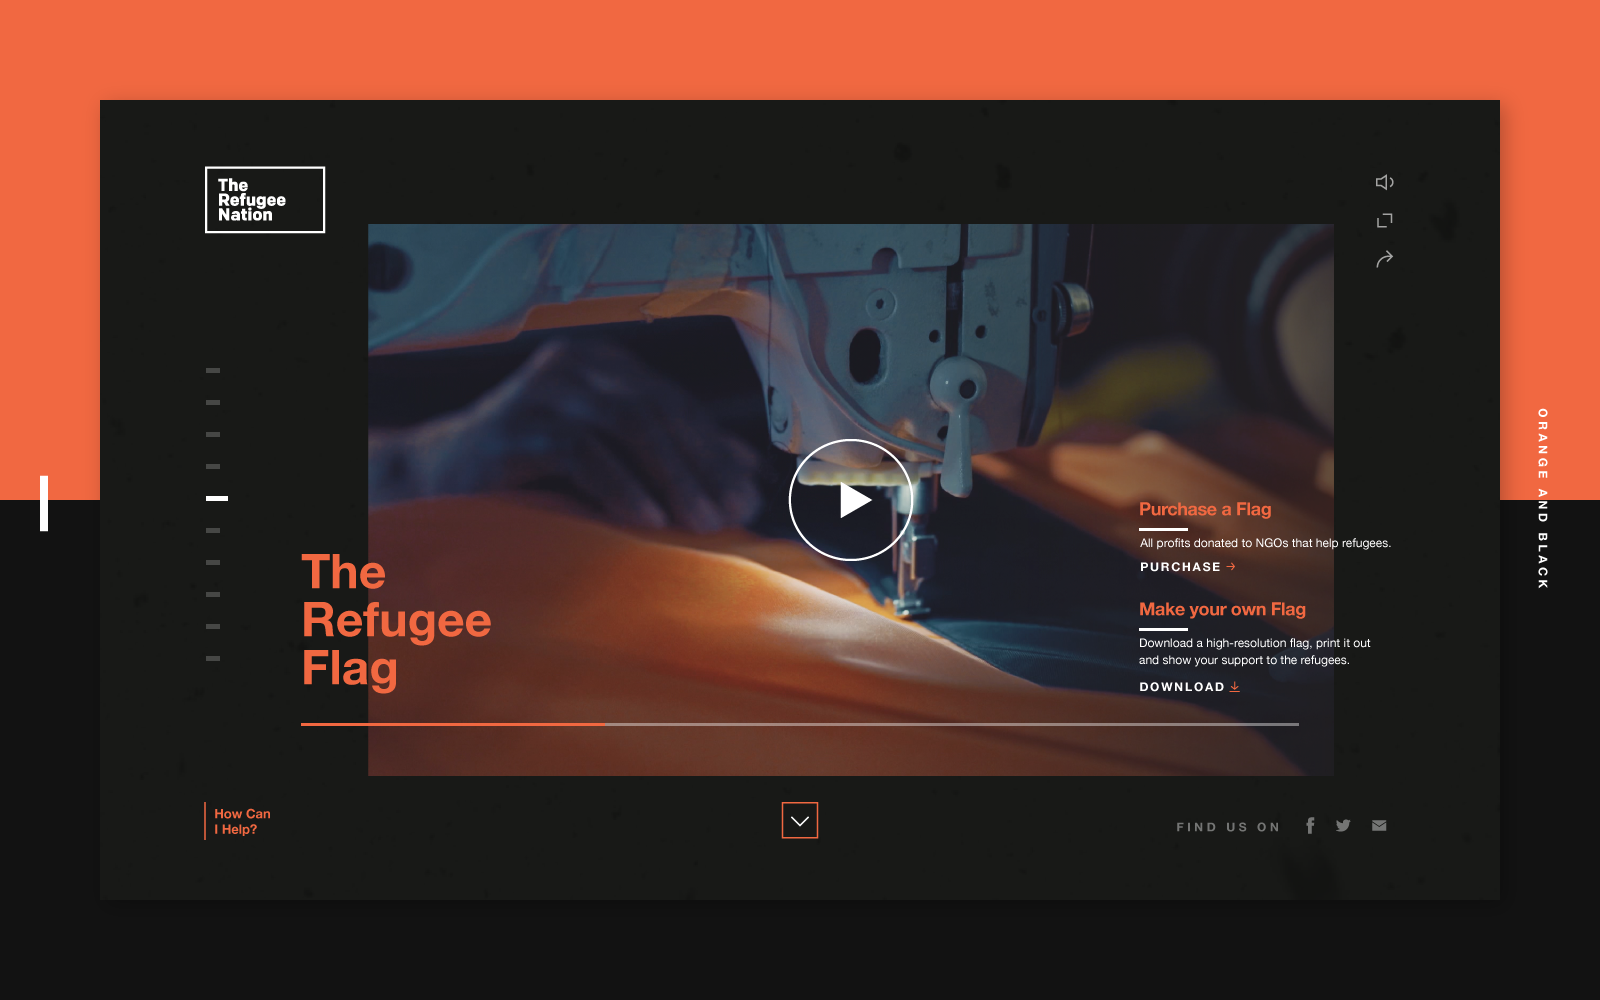 Interaction Design & Art Direction: The Refugee Nation